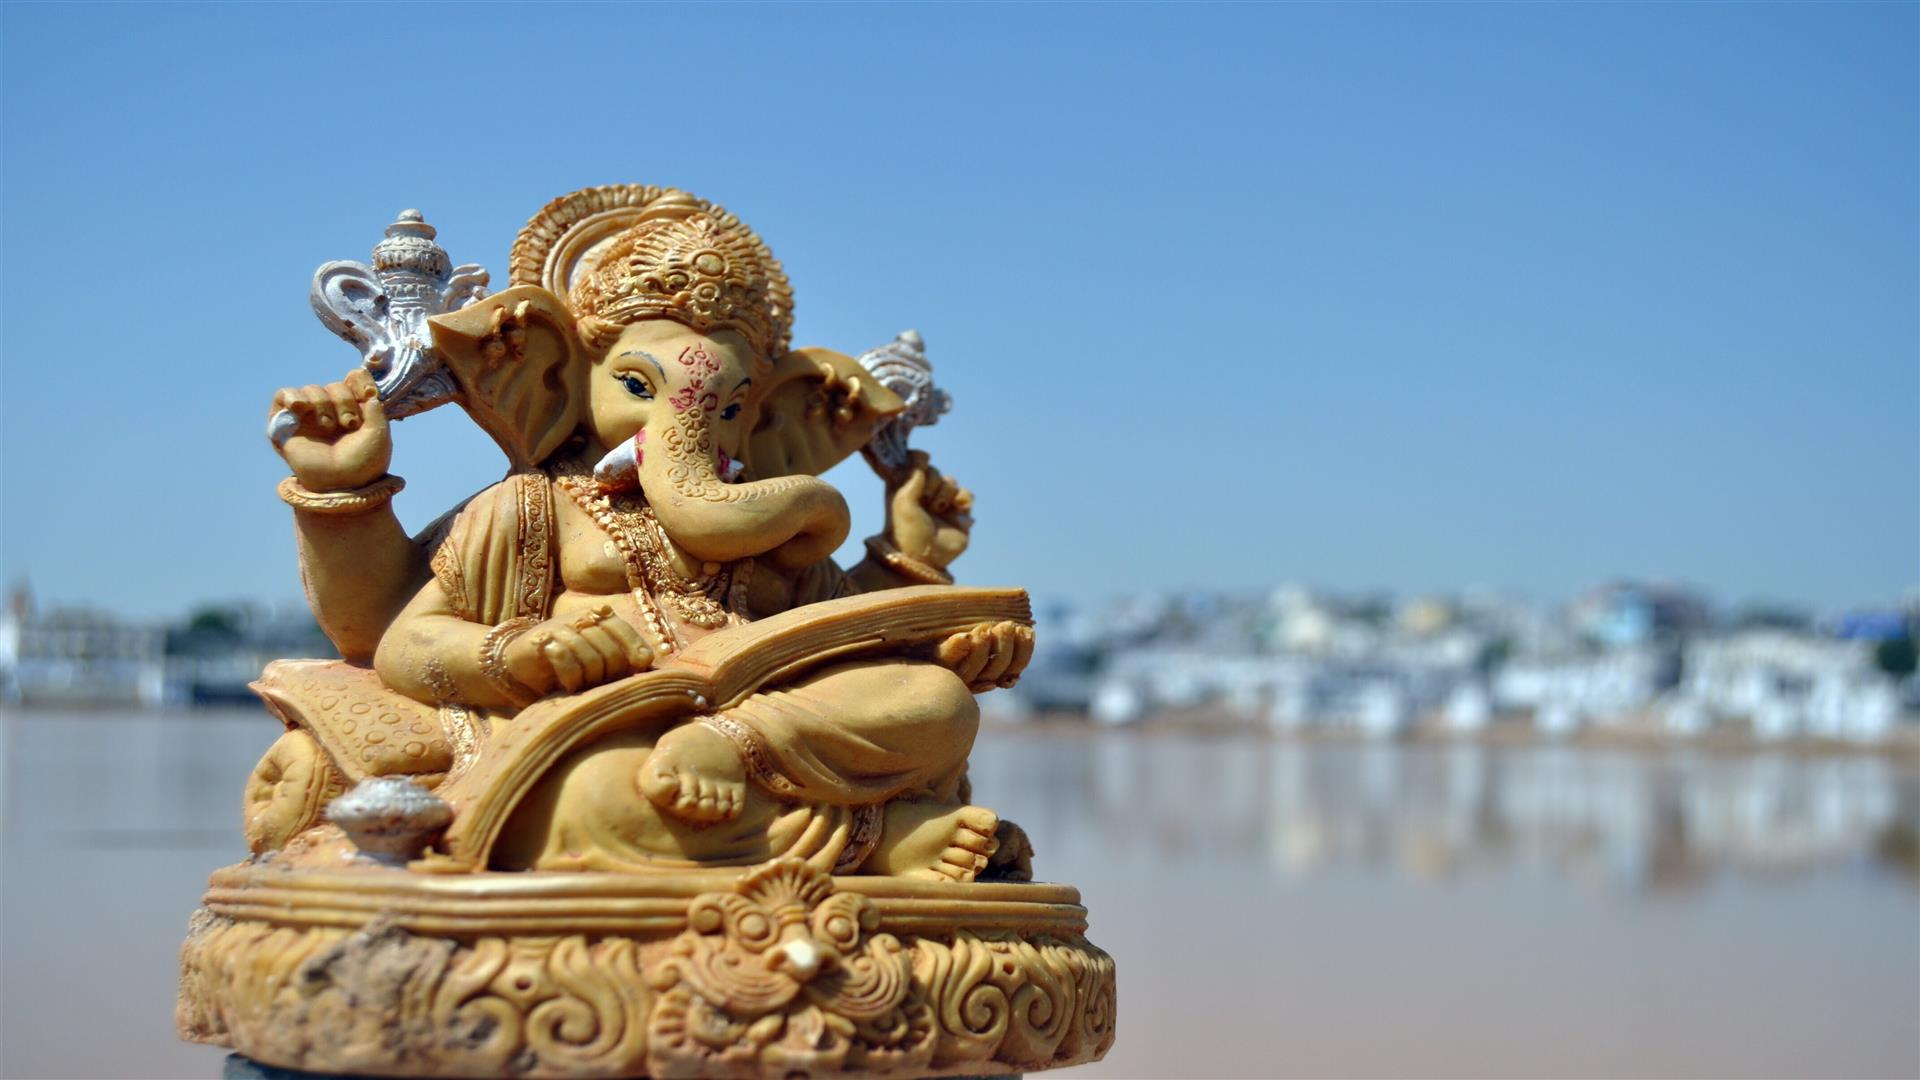 1920x1080 Beautiful Ganesh Wallpaper on Ganesh Chaturthi